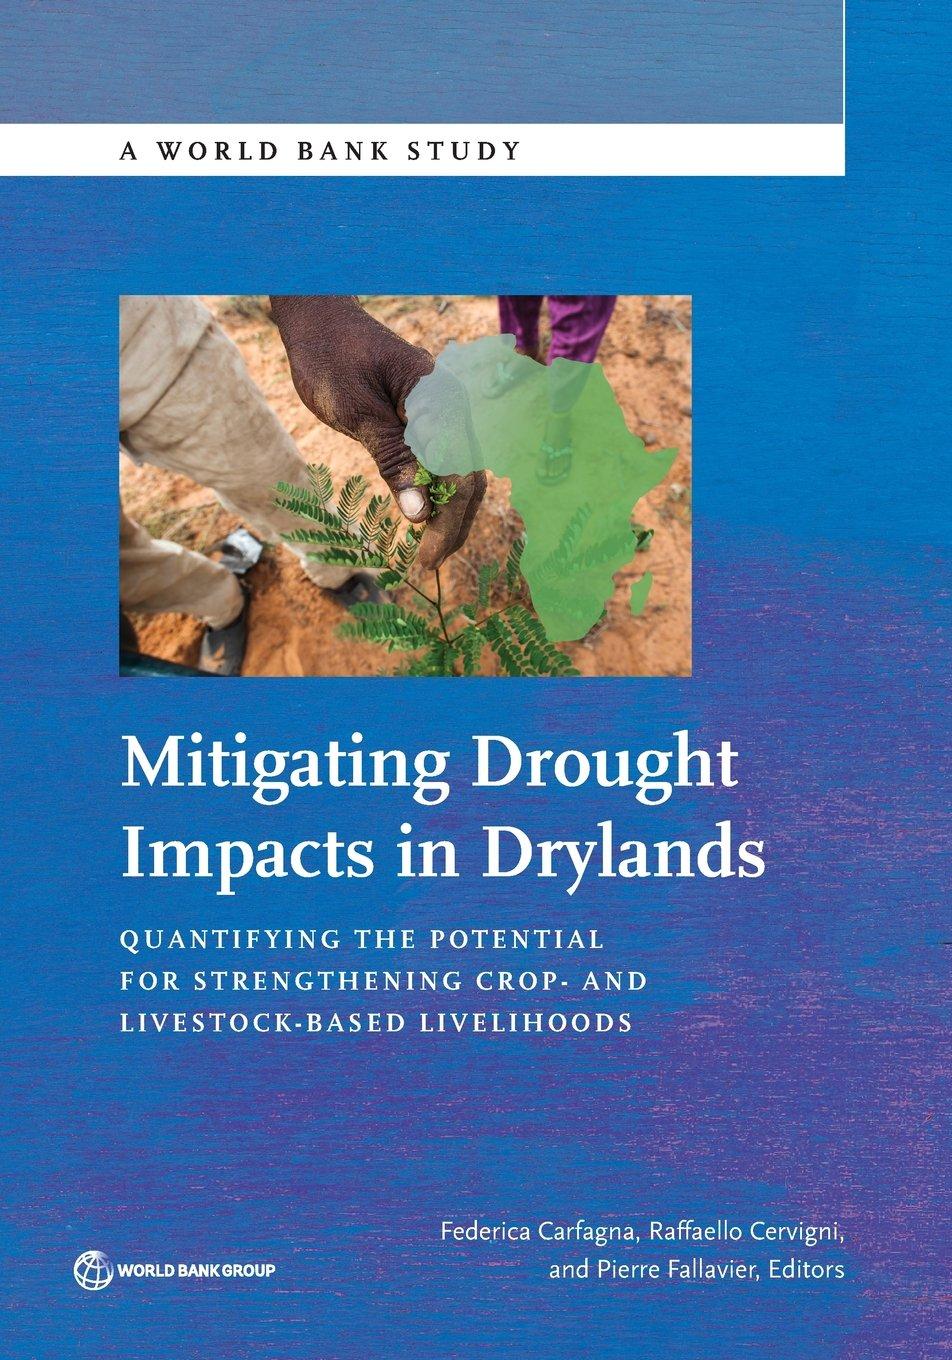 Download Mitigating Drought Impacts in Drylands: Quantifying the Potential for Strengthening Crop- and Livestock-Based Livelihoods (World Bank Studies) pdf